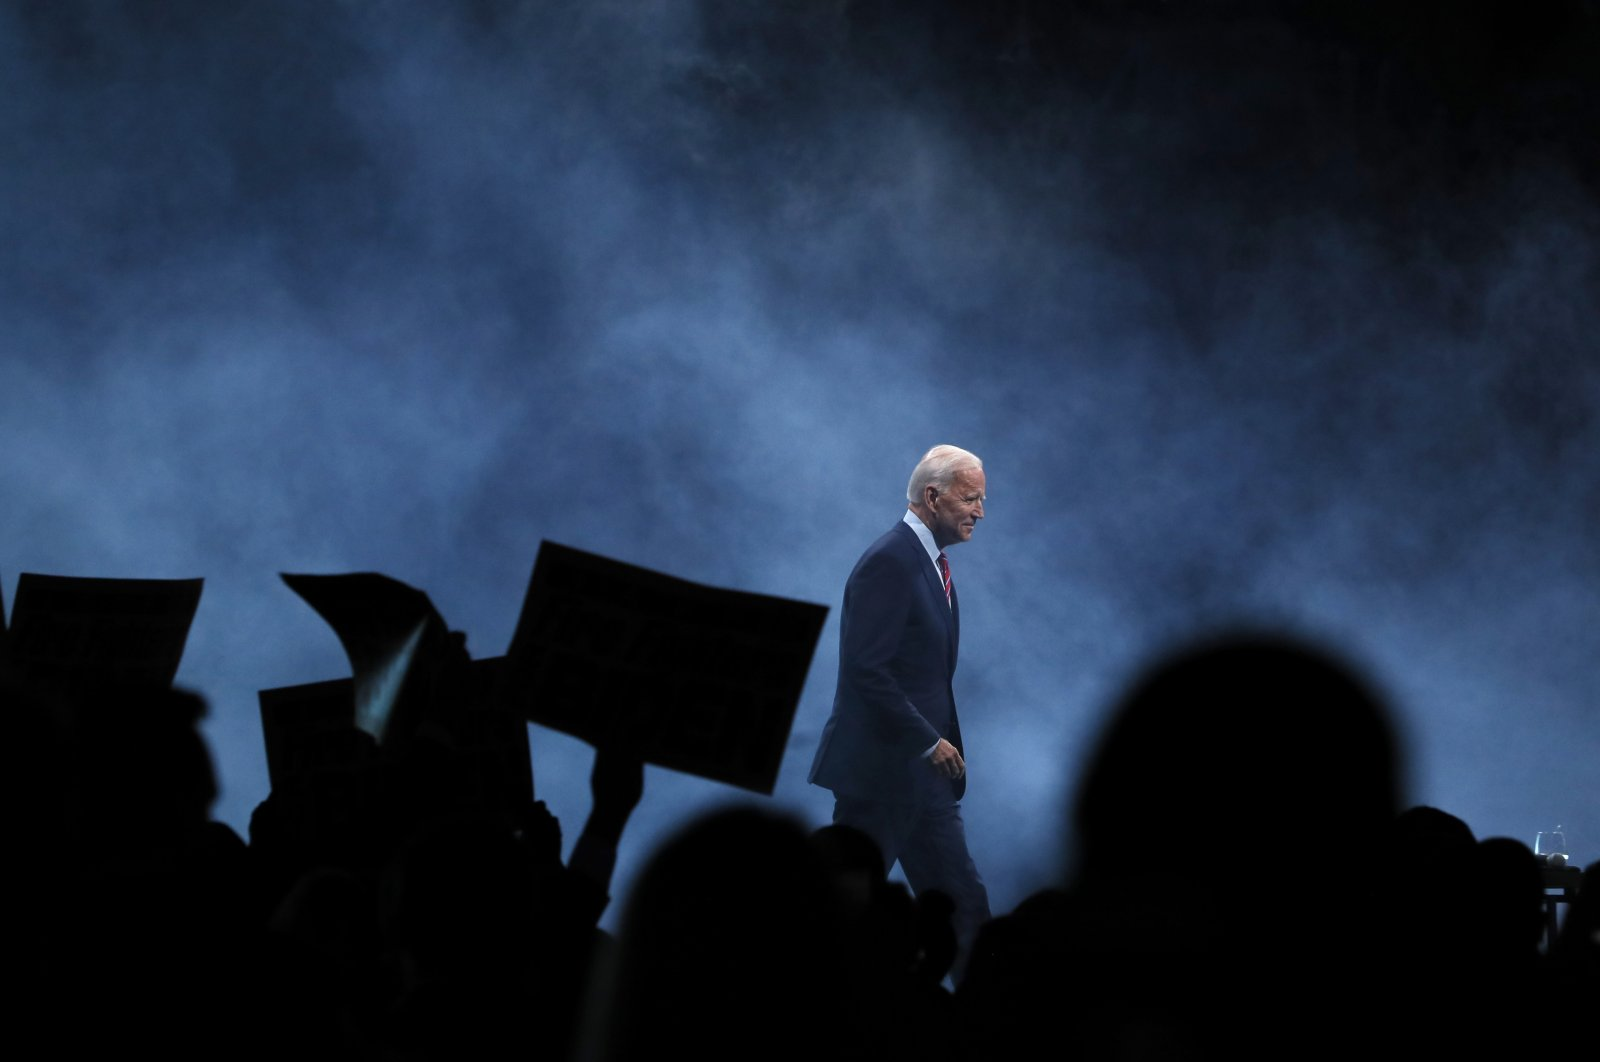 In this Nov. 1, 2019, file photo Democratic presidential candidate former Vice President Joe Biden walks on stage to speak at the Iowa Democratic Party's Liberty and Justice Celebration in Des Moines, Iowa. (AP File Photo)